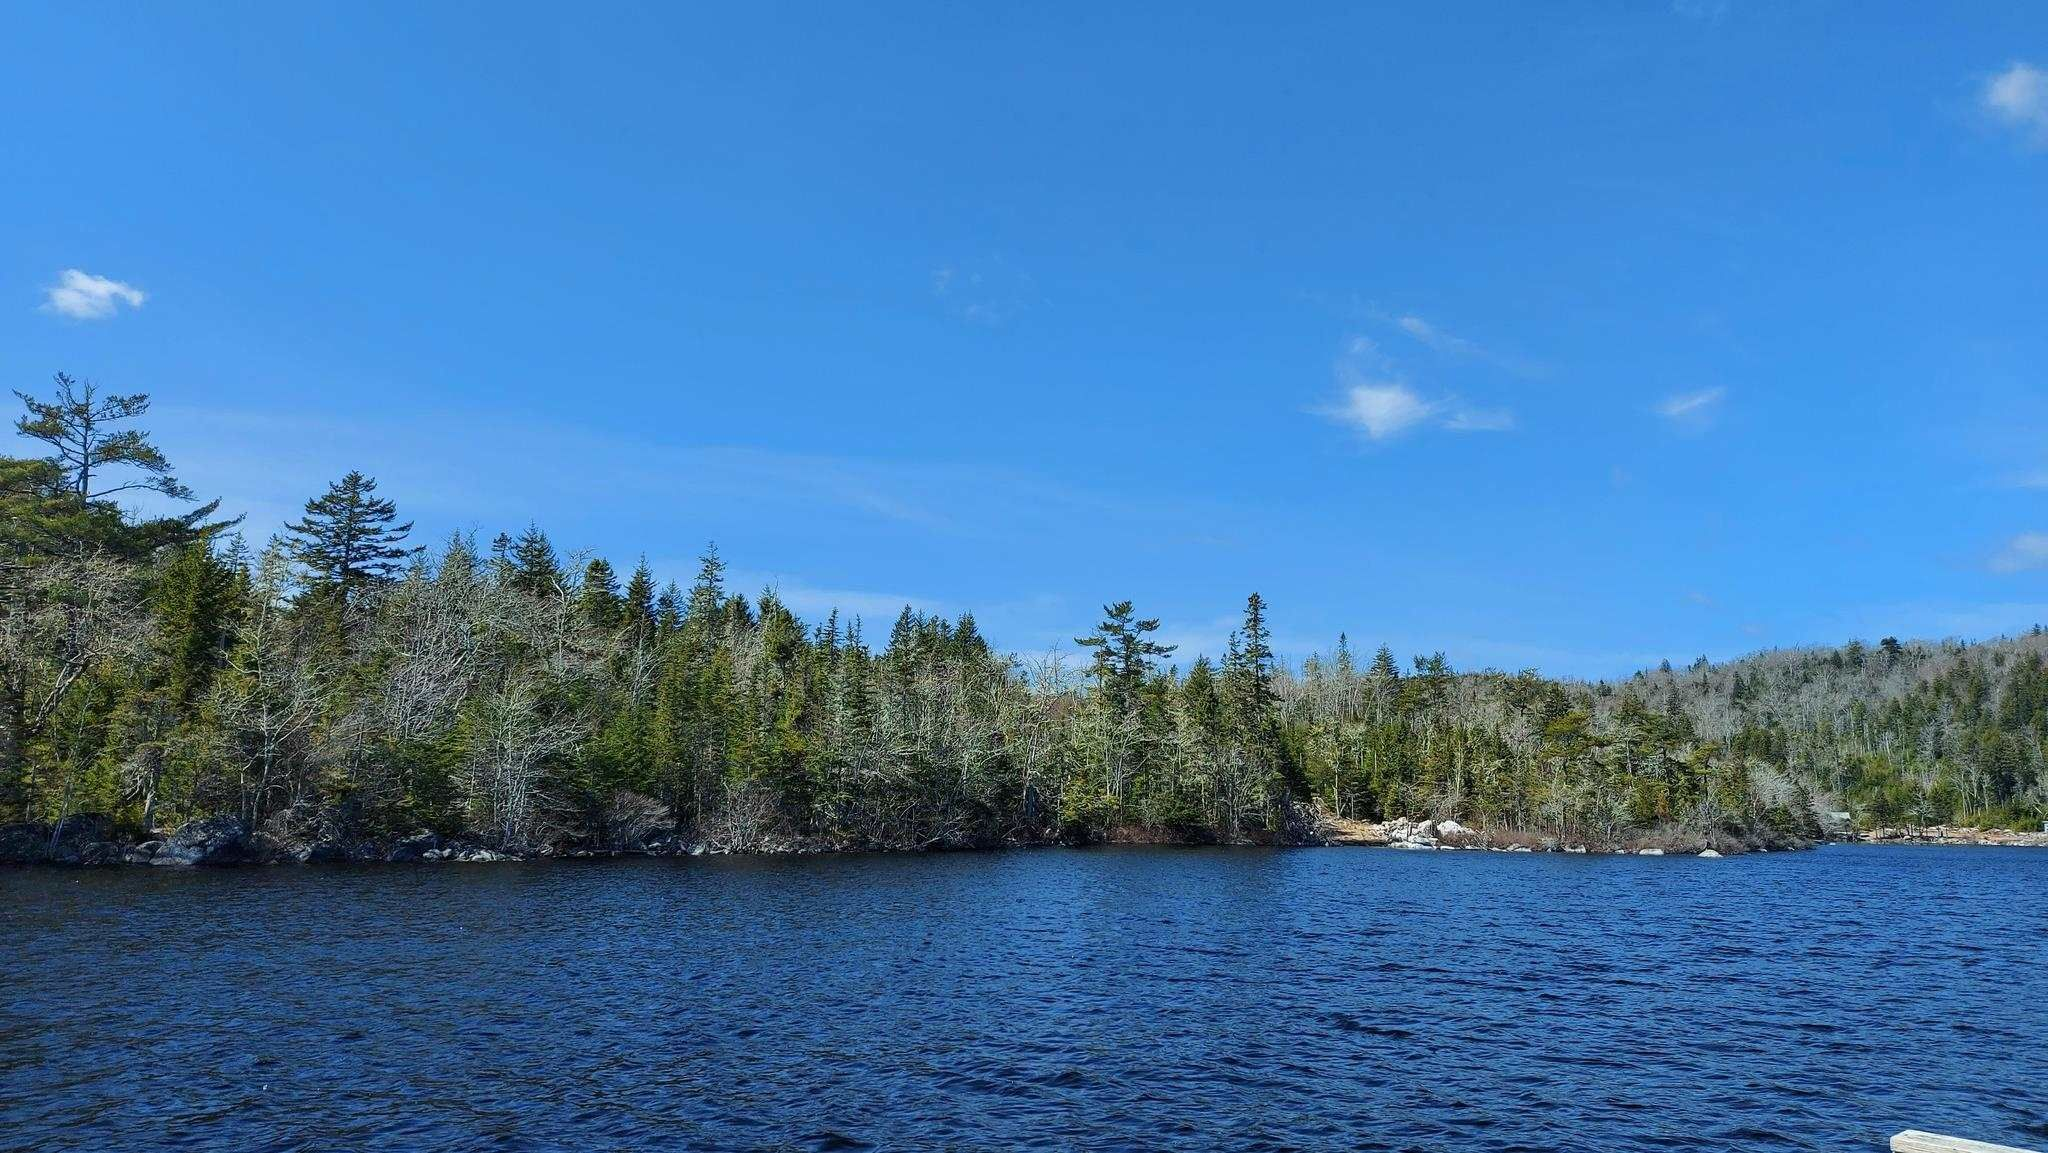 Main Photo: Lot 5 1206 Lake Charlotte Way in Upper Lakeville: 35-Halifax County East Vacant Land for sale (Halifax-Dartmouth)  : MLS®# 202113701